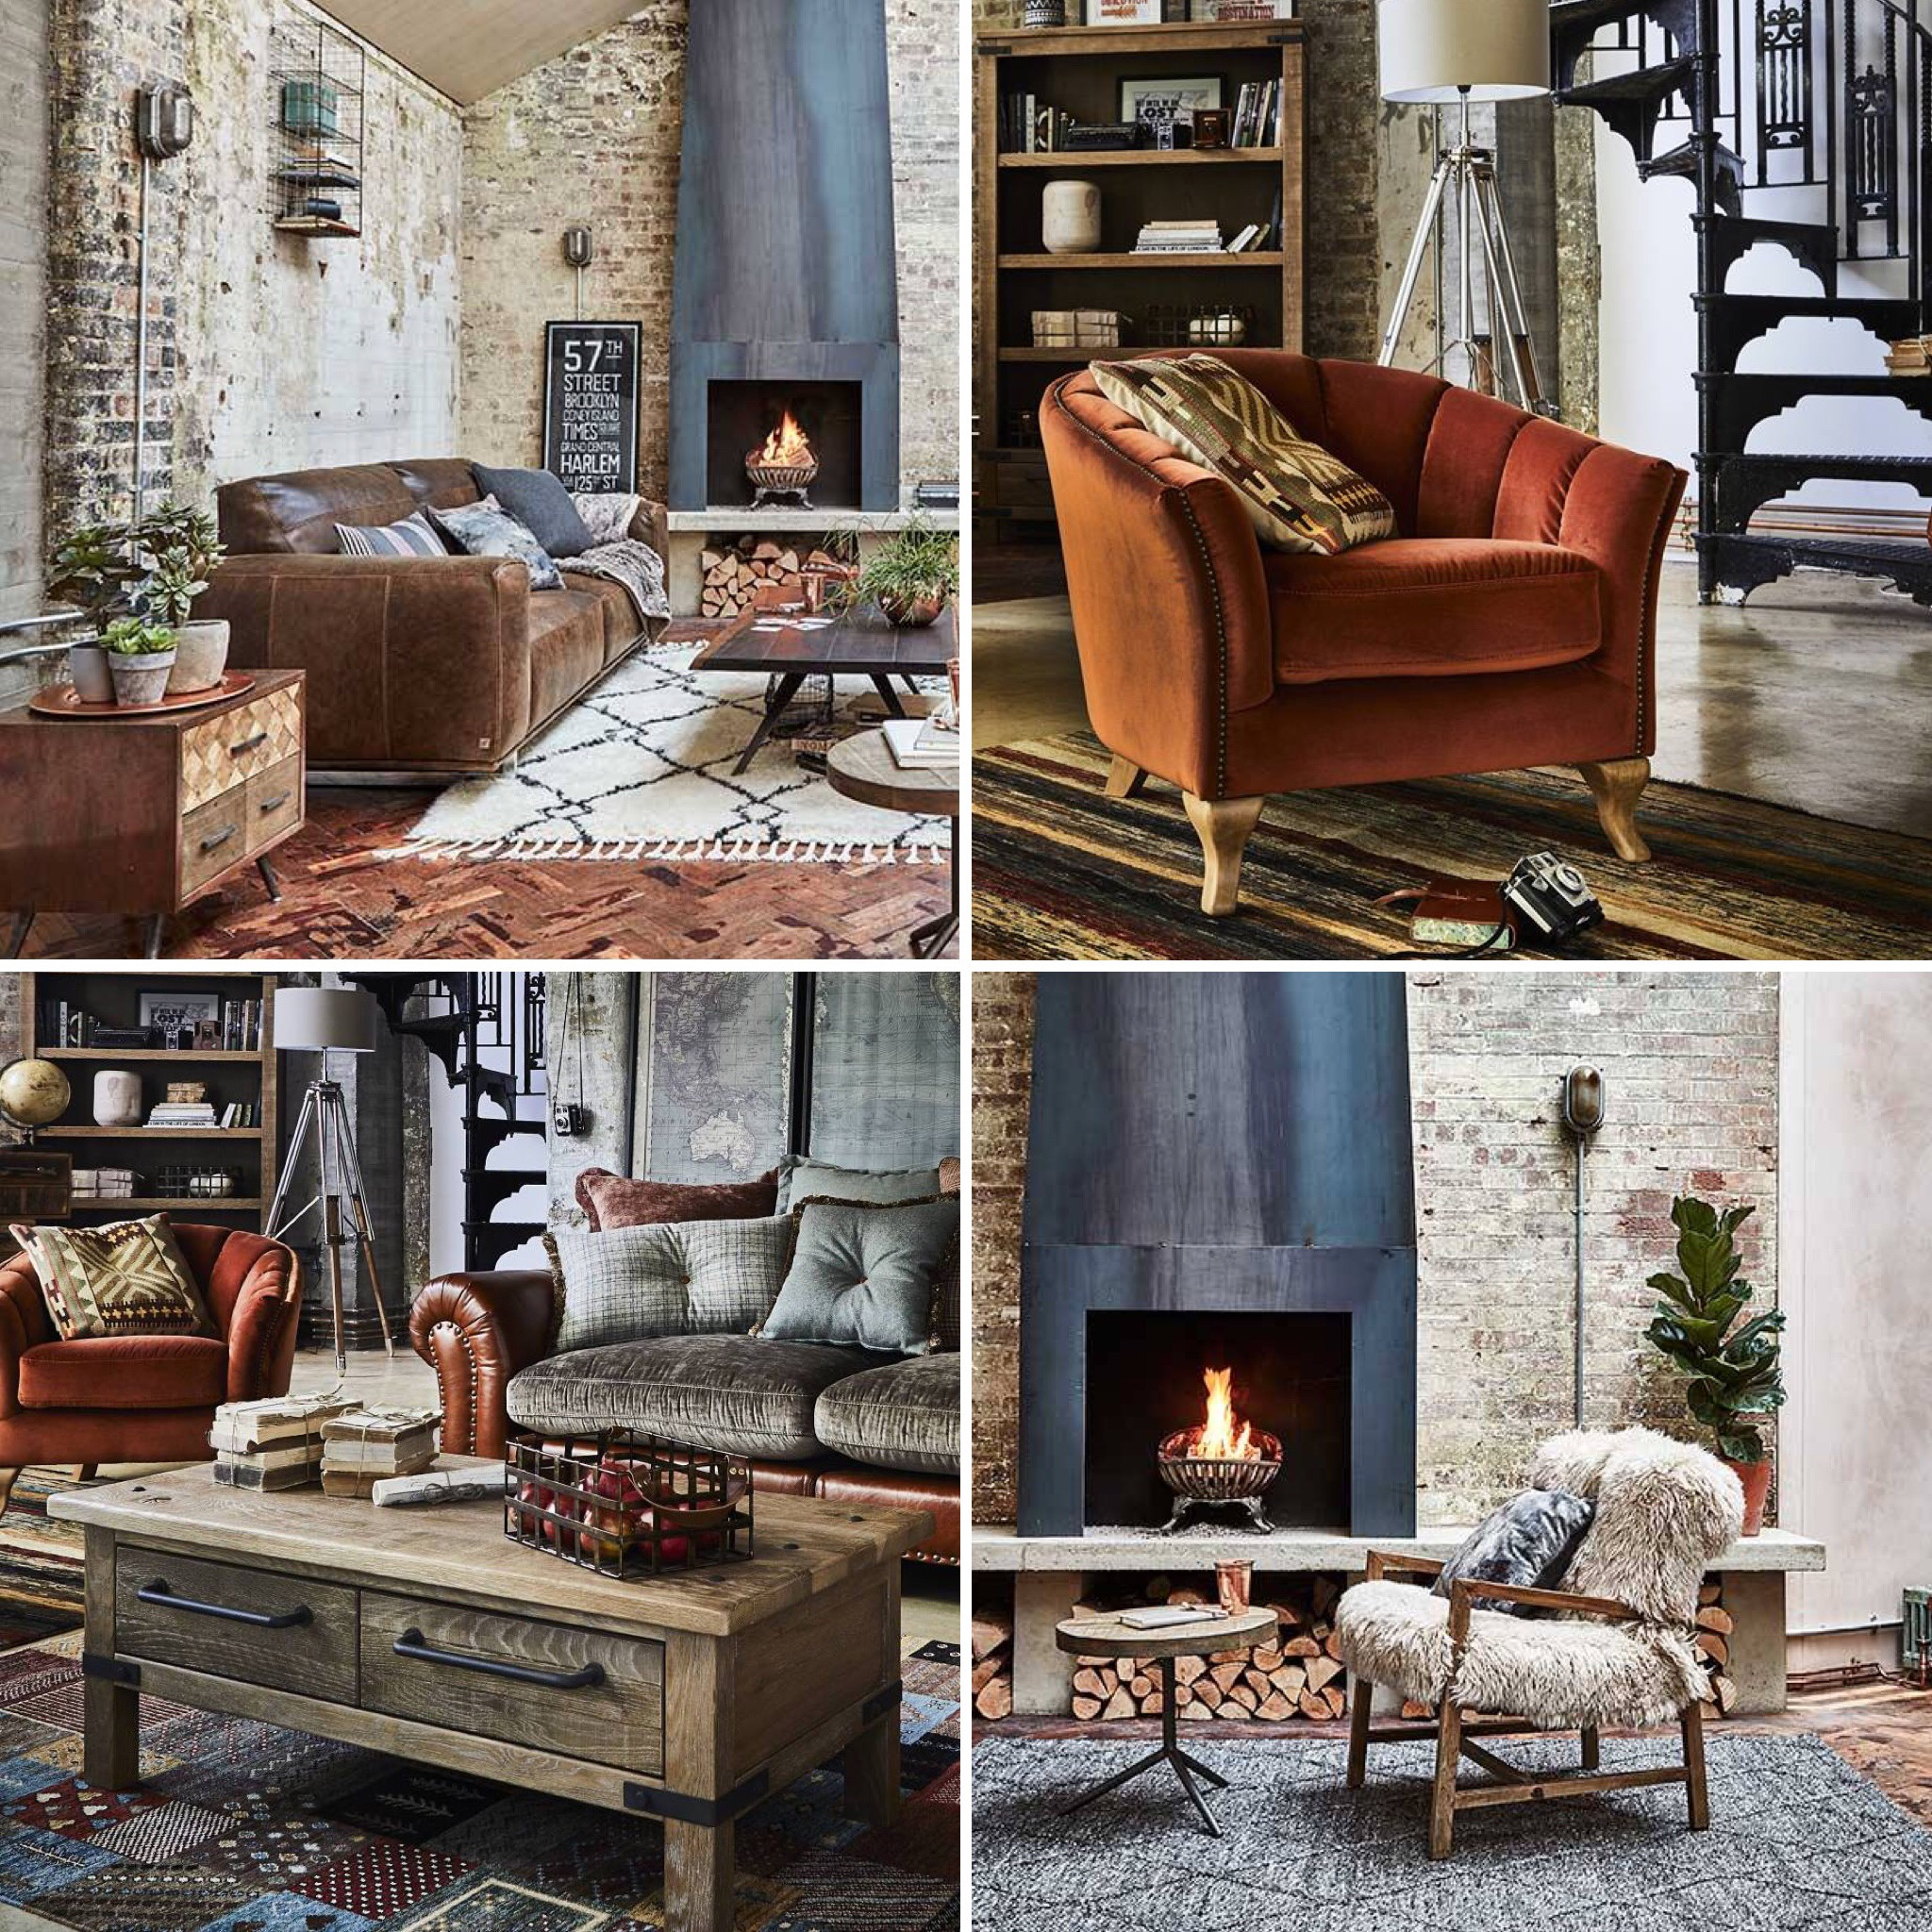 Barker and stonehouse interiors lifestyle shoot on for Home furniture london